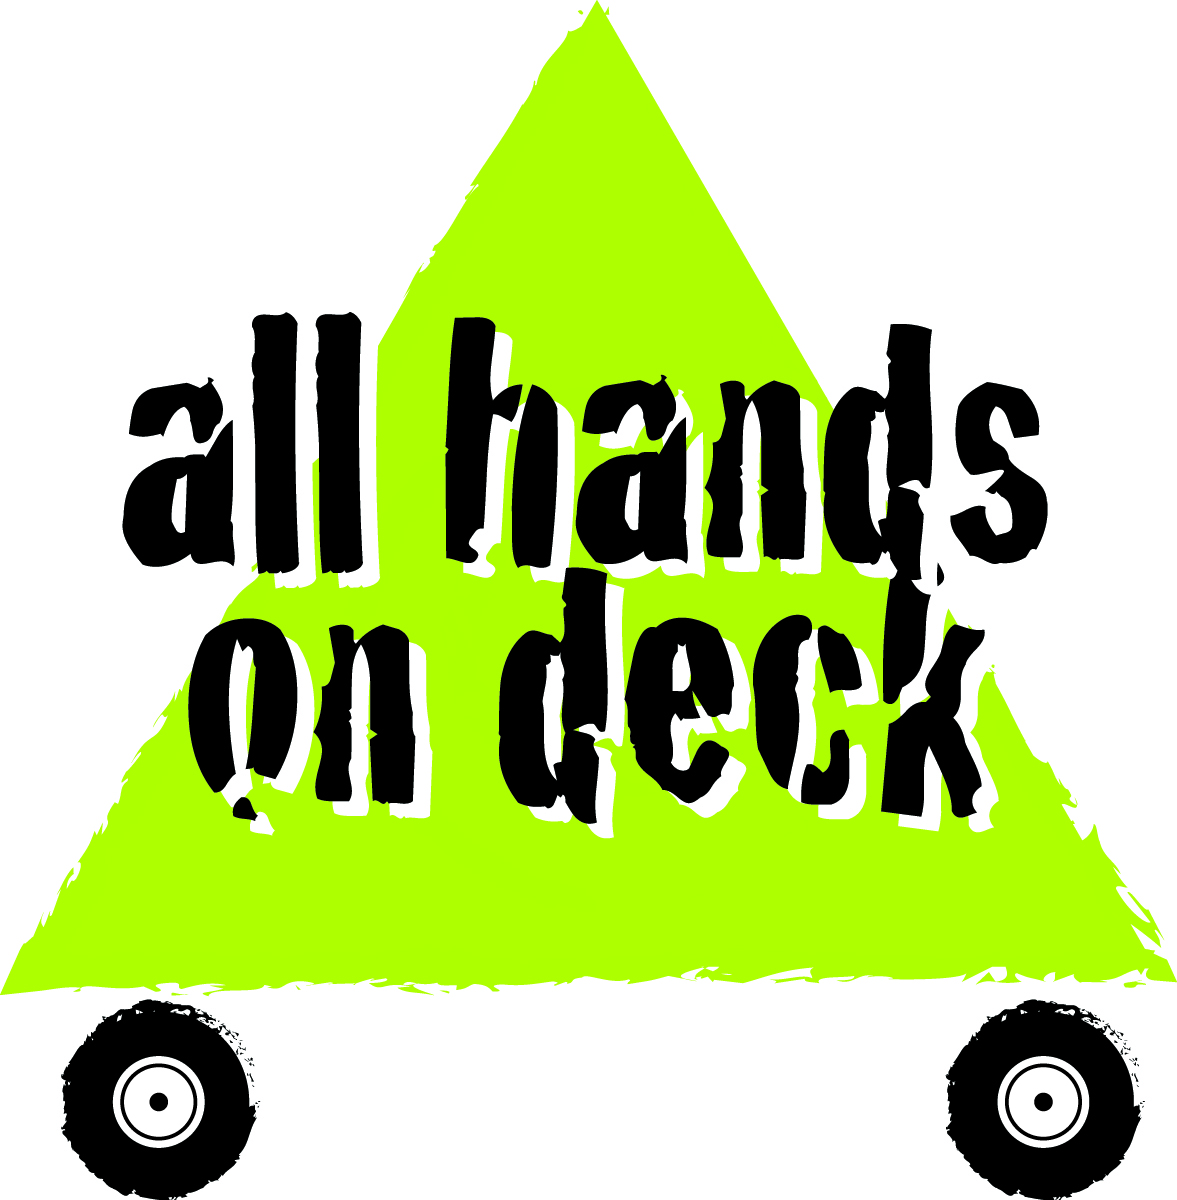 All hands on deck - Idioms by The Free Dictionary